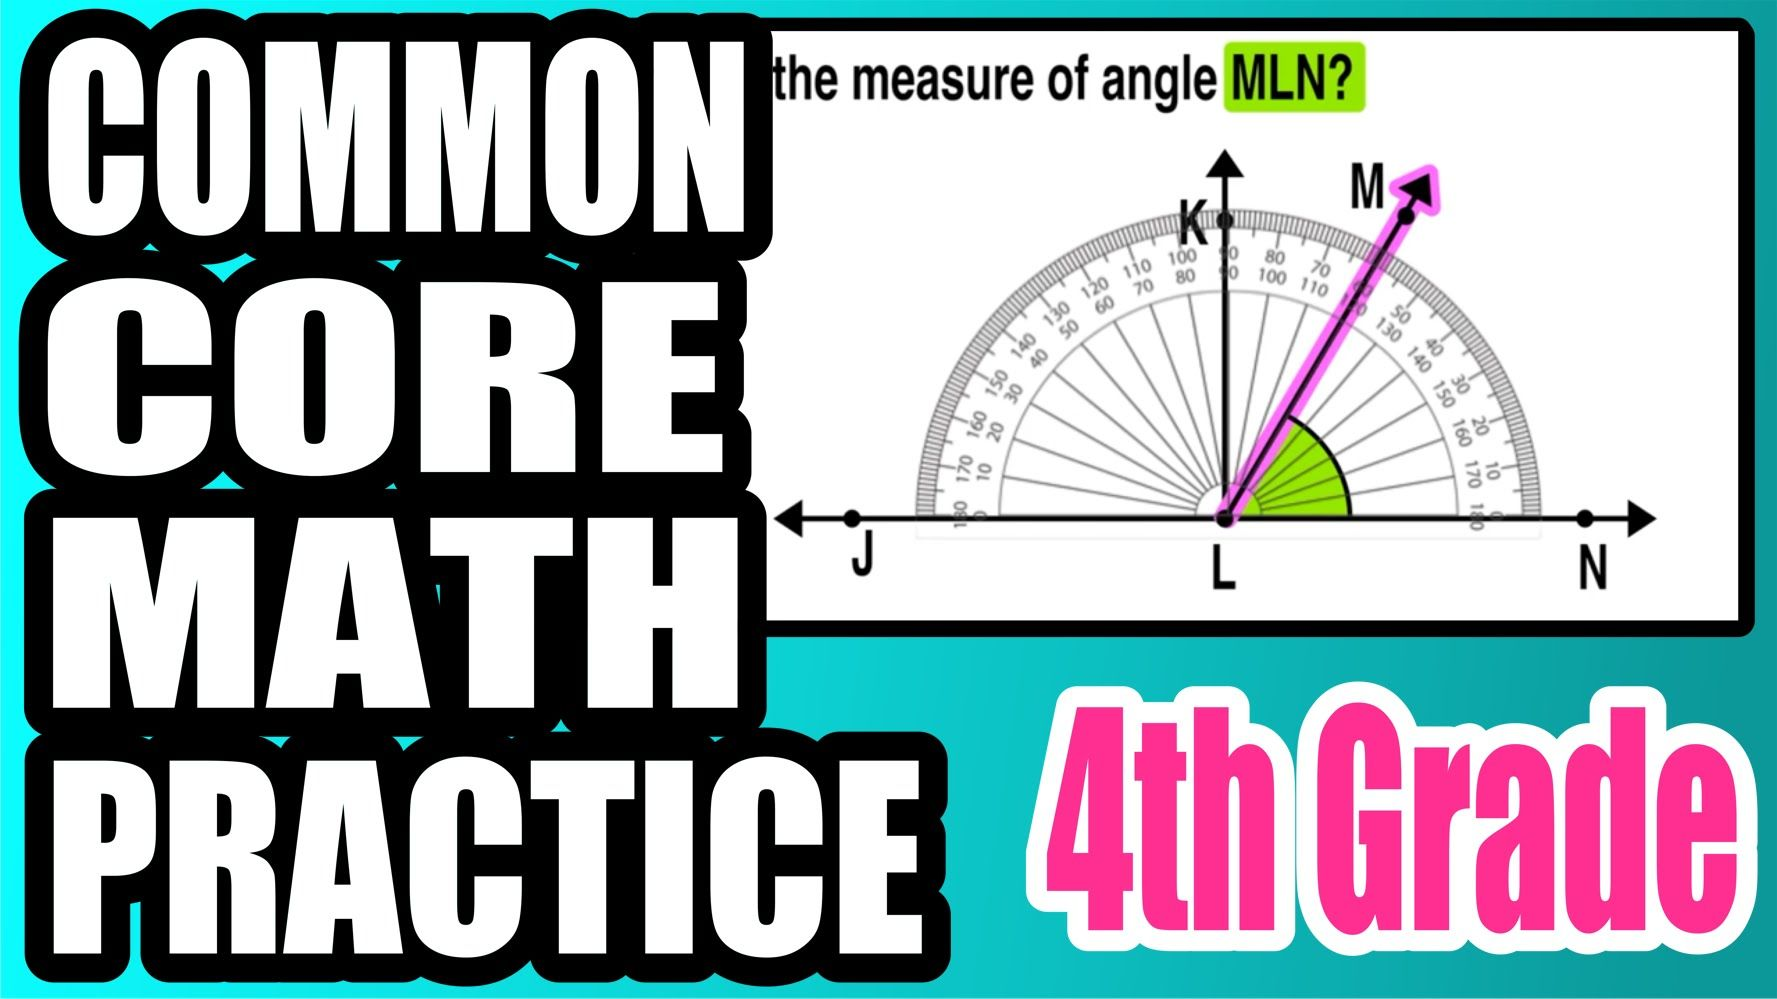 How Do I Measure An Angle Using A Protractor